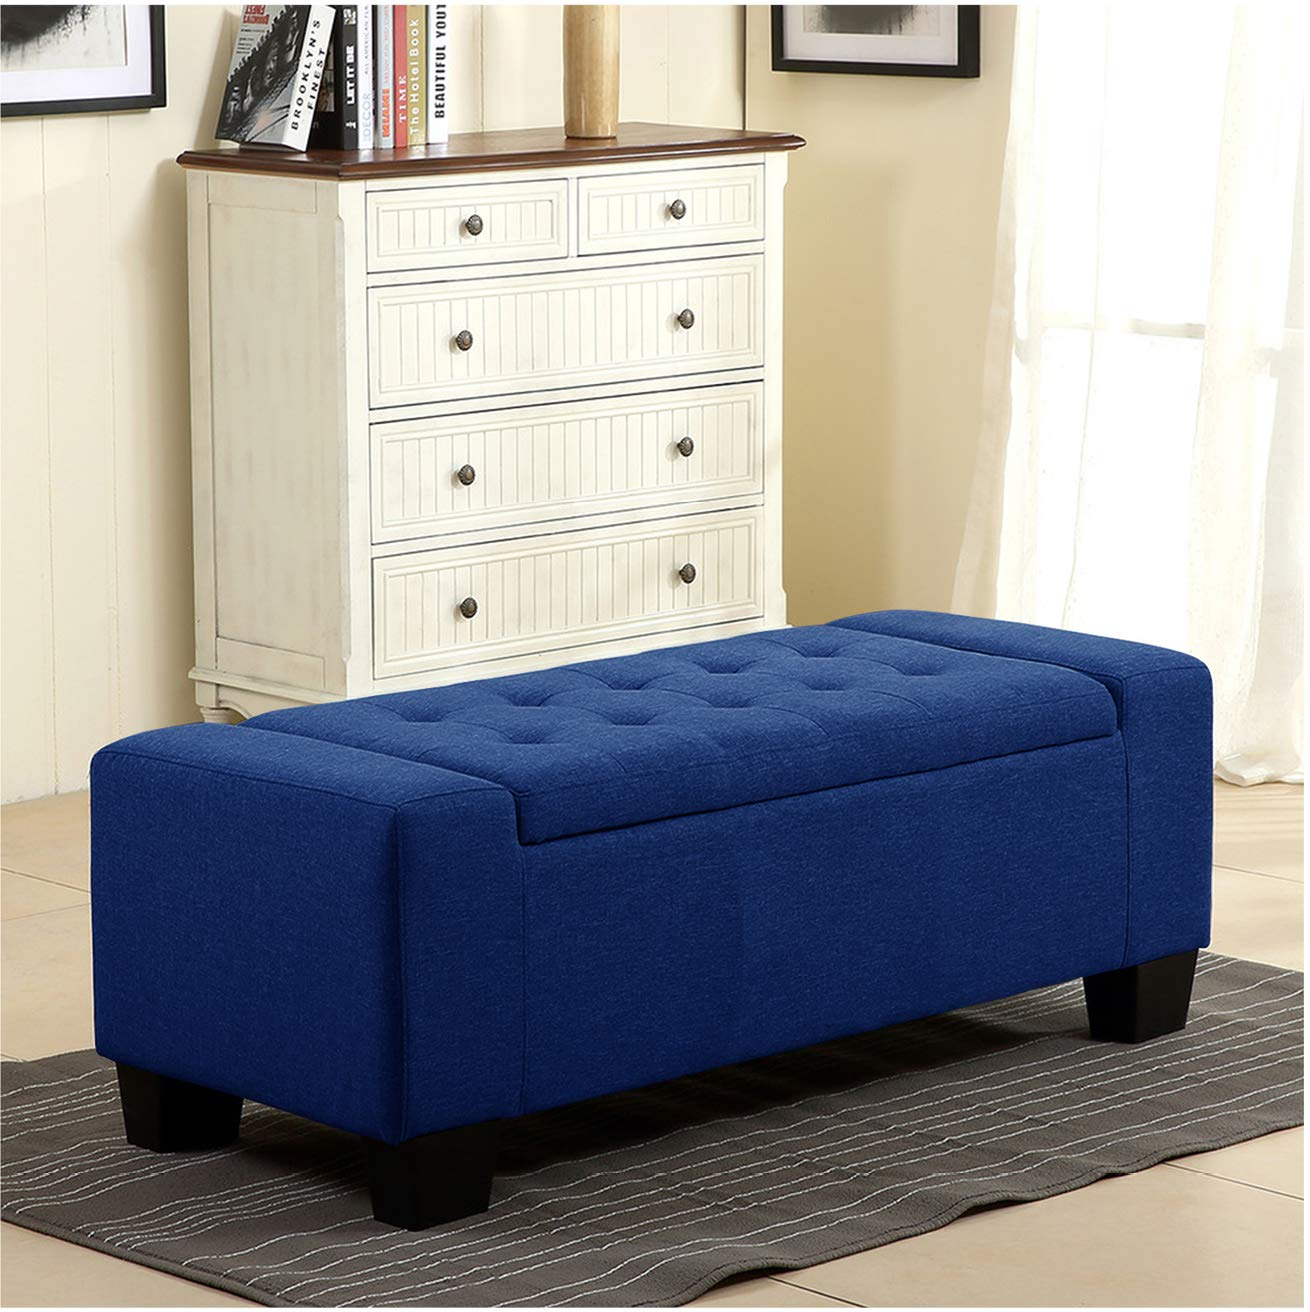 Lozon Fabric Wooden Bench Sofa for Living Room Blue Color